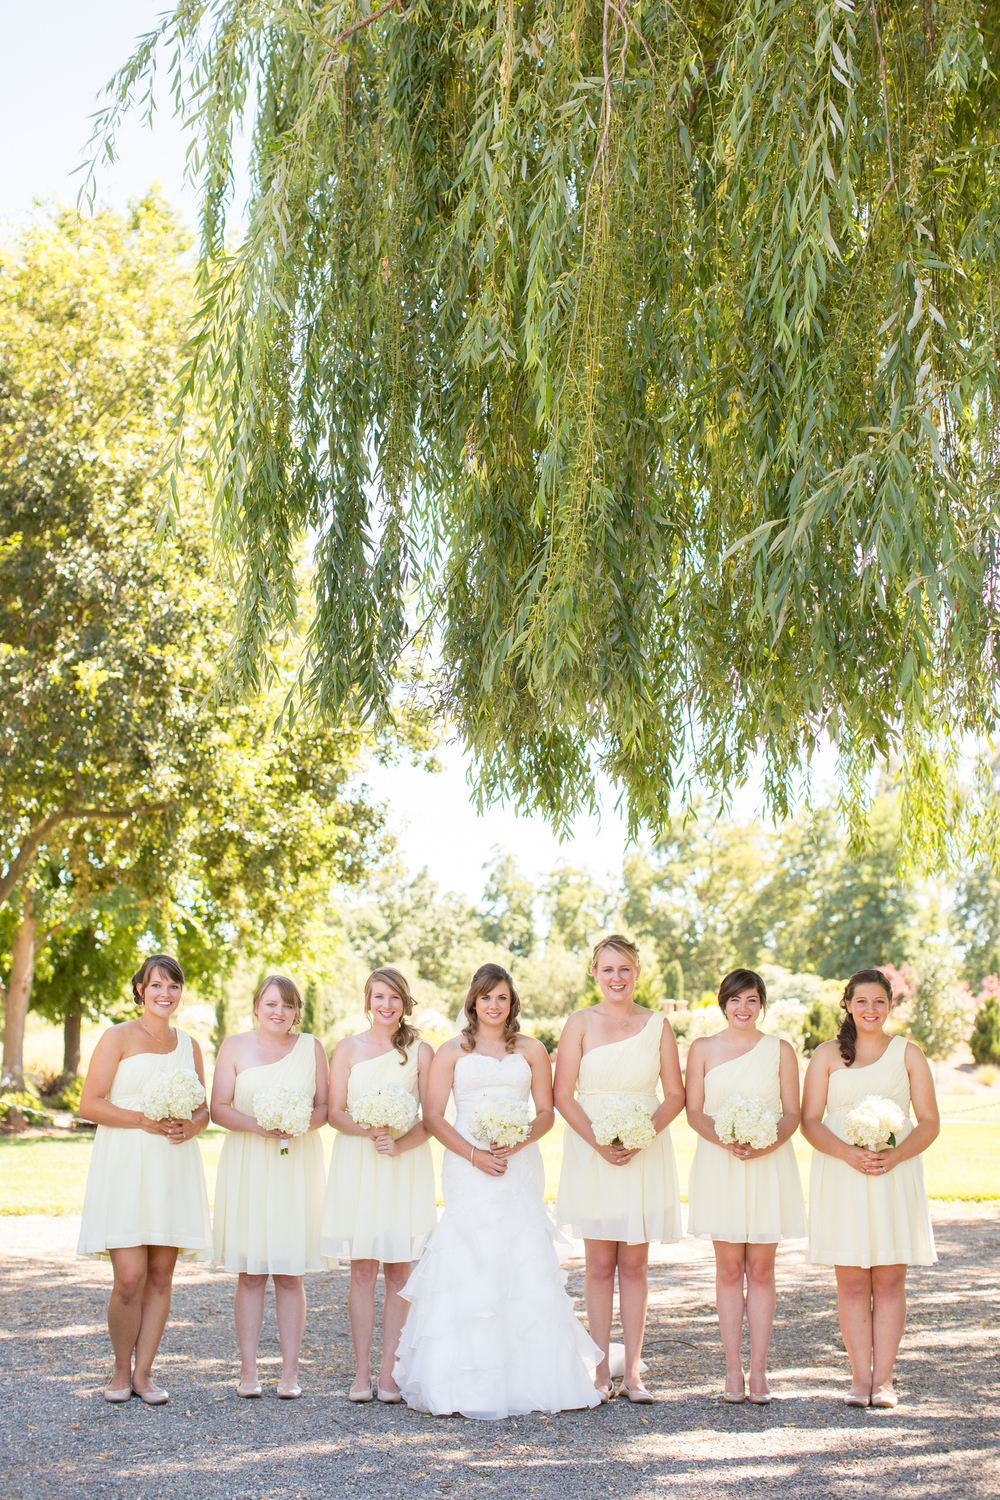 Chico California Wedding and Engagement Photography by TréCreative - Creek Haven Vineyard Estate Wedding Photography (206 of 437).jpg